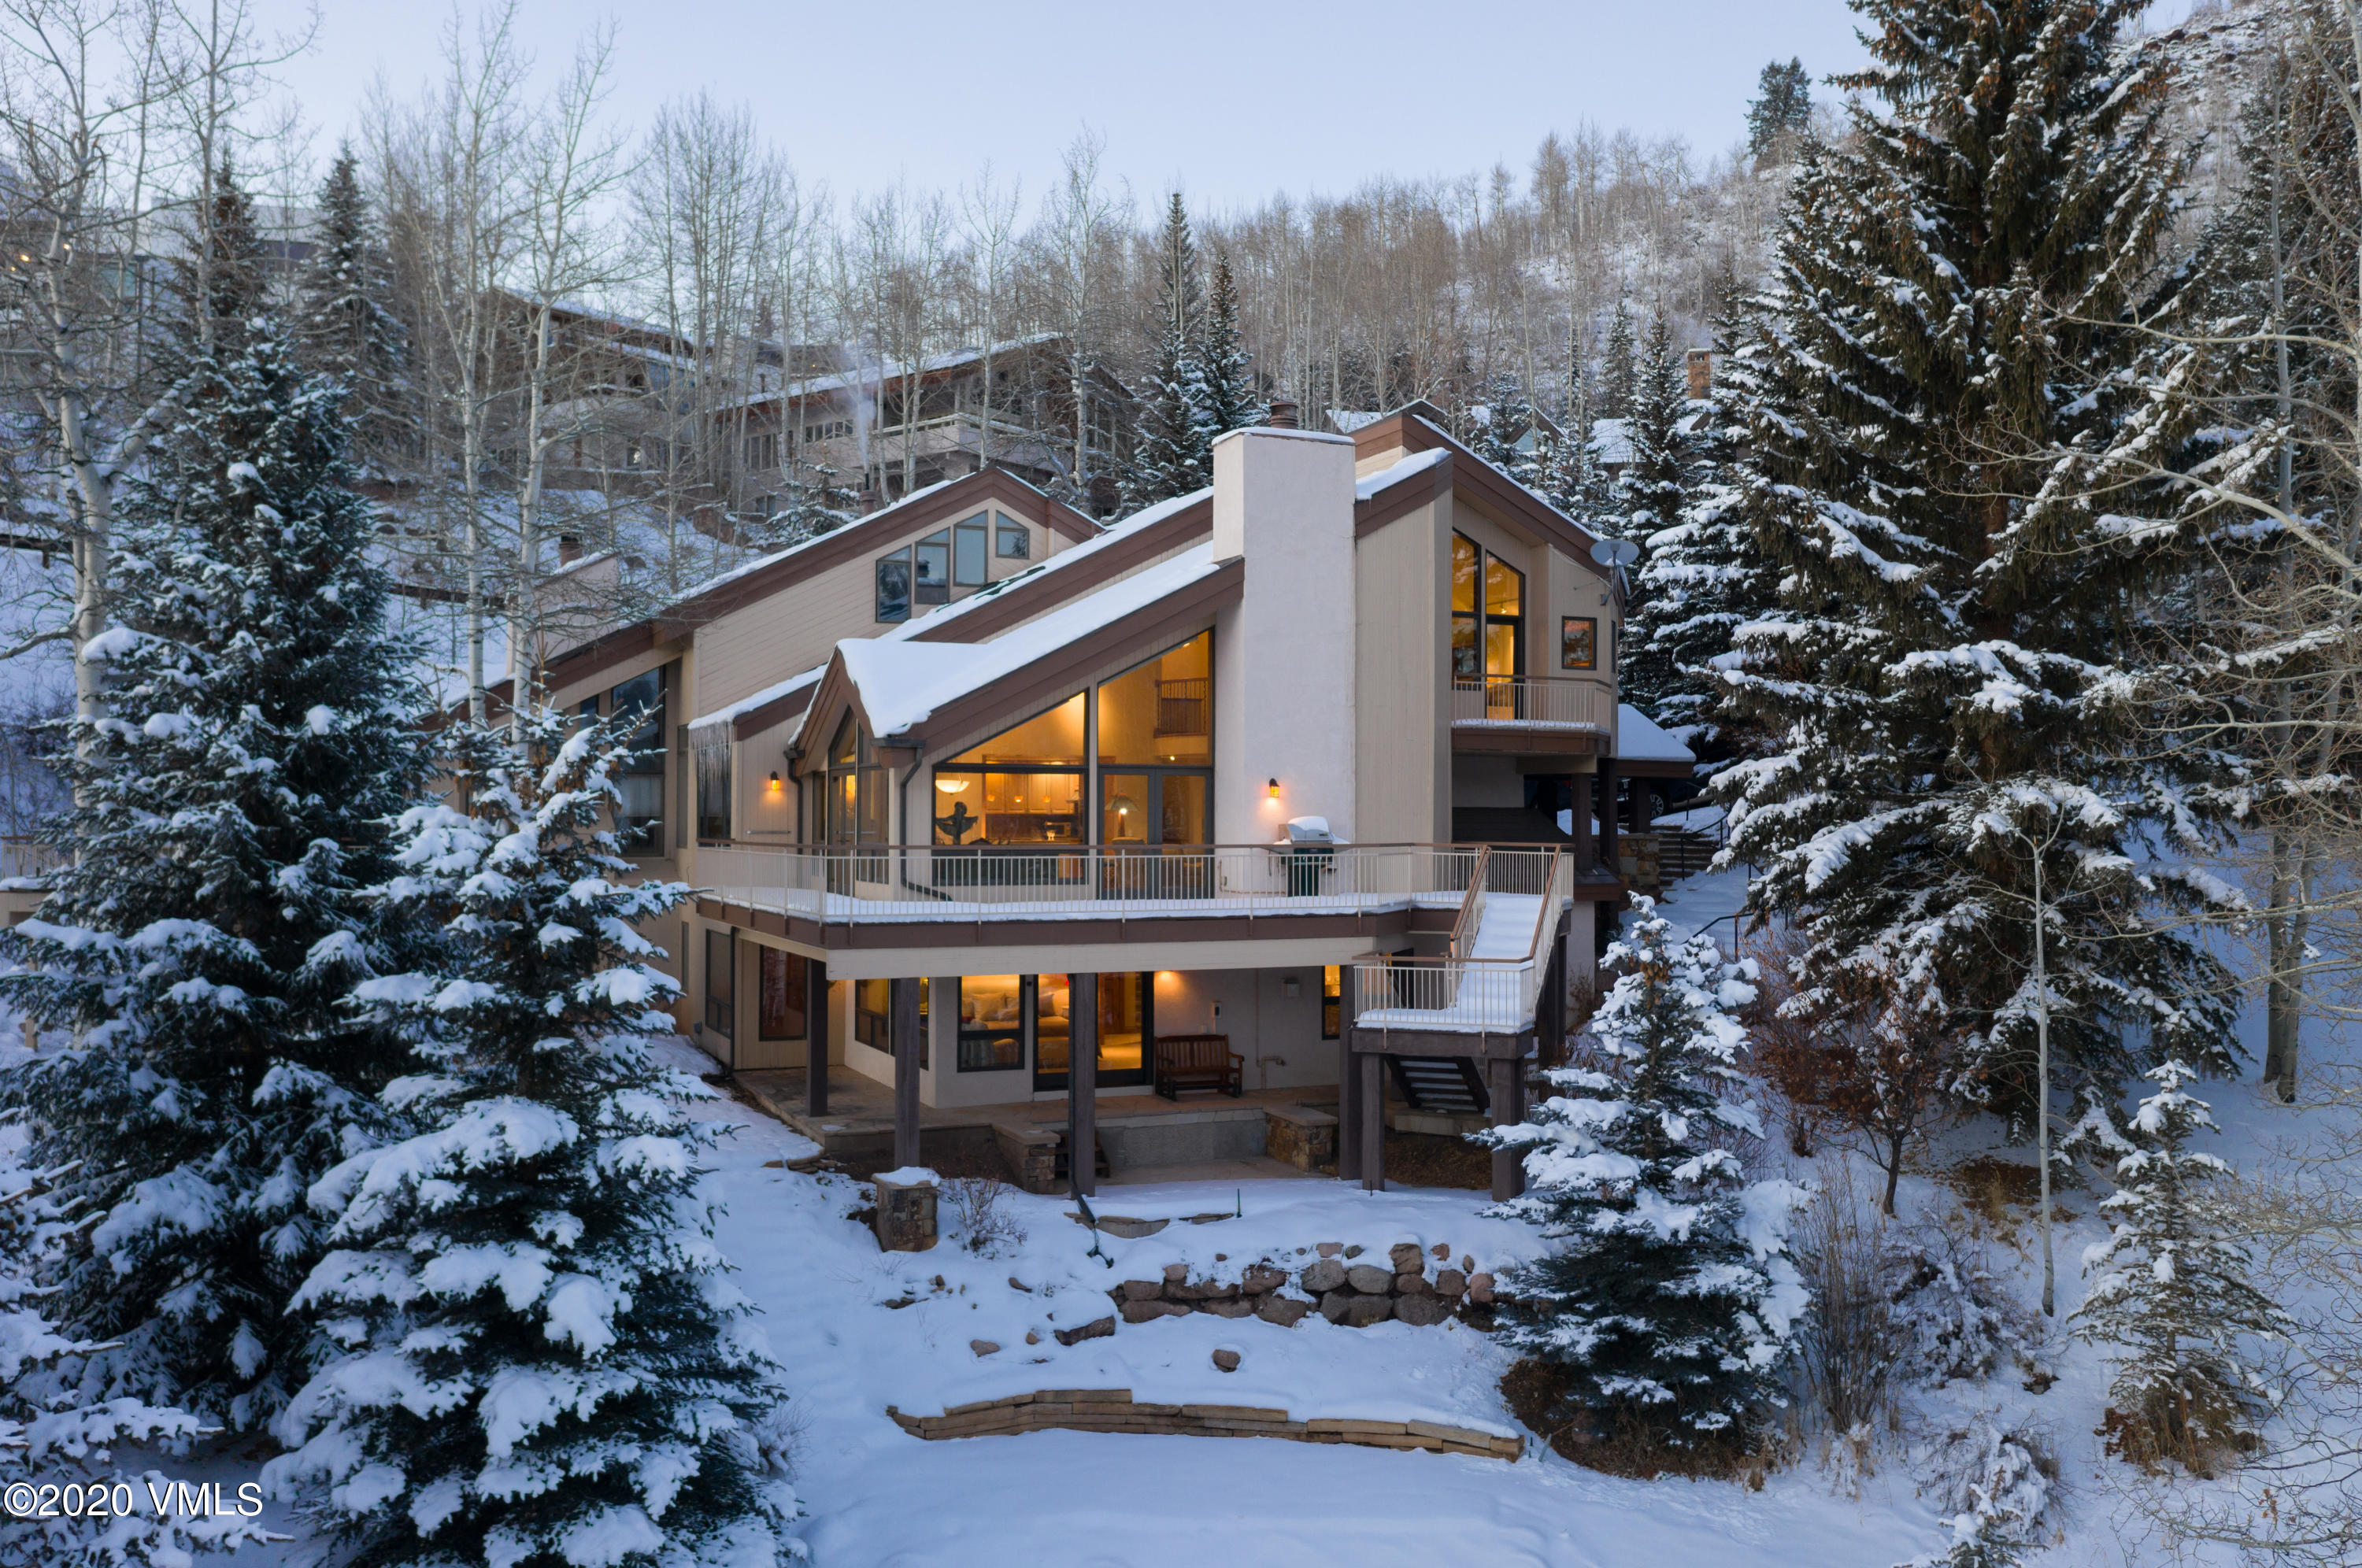 You don't see a home with ski slope views like this everyday! Welcoming walls of windows lead out to an over-sized deck and a first hand look at the snow report for Vail.  In the summer you will be able to relax in the mature, fully landscaped perennial garden that includes a spring fed water feature.  This is a quintessential Vail home in the exclusive Potato Patch neighborhood.  The home was completely remodeled (down to the studs) in 2005 with many thoughtful upgrades and an expansion to the floorplan.  Plenty of room for a large family with 3 bedrooms and 2 large dens that can be used as additional sleeping spaces or offices.  Bright and sunny on all levels with a master bathroom and closet to die for.  This home and views have to be seen to be believed.  Offered mostly furnished.